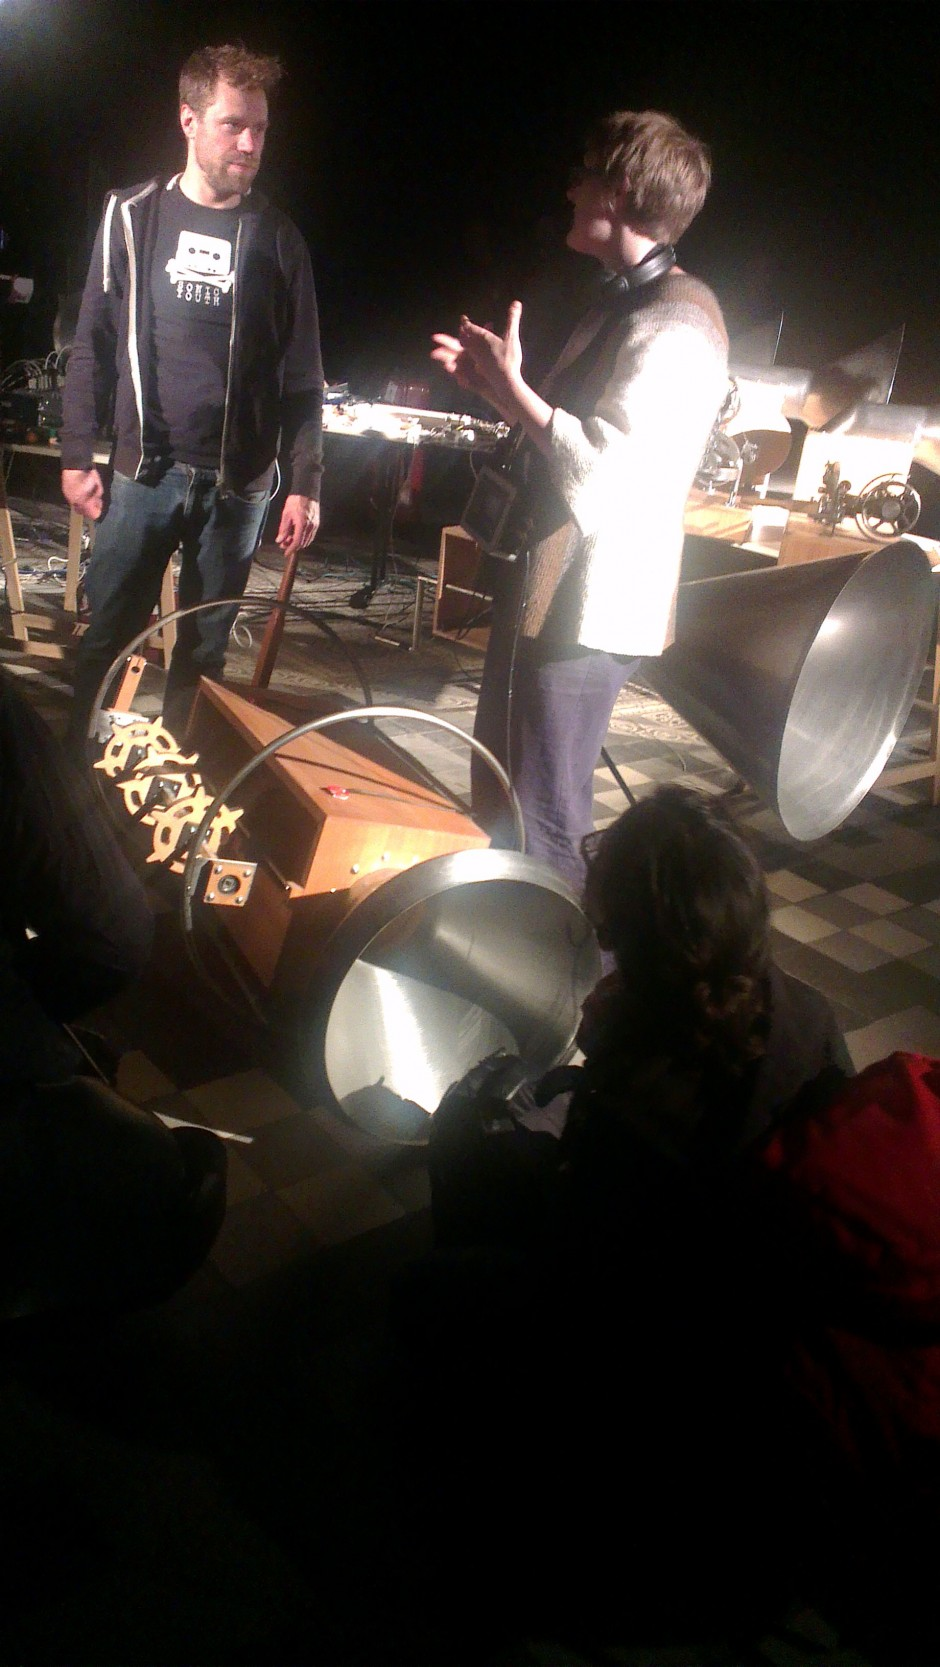 Sound art gives Wessel Westerfeld and Yuri Landman the horn.  Felix and Valeria admire...